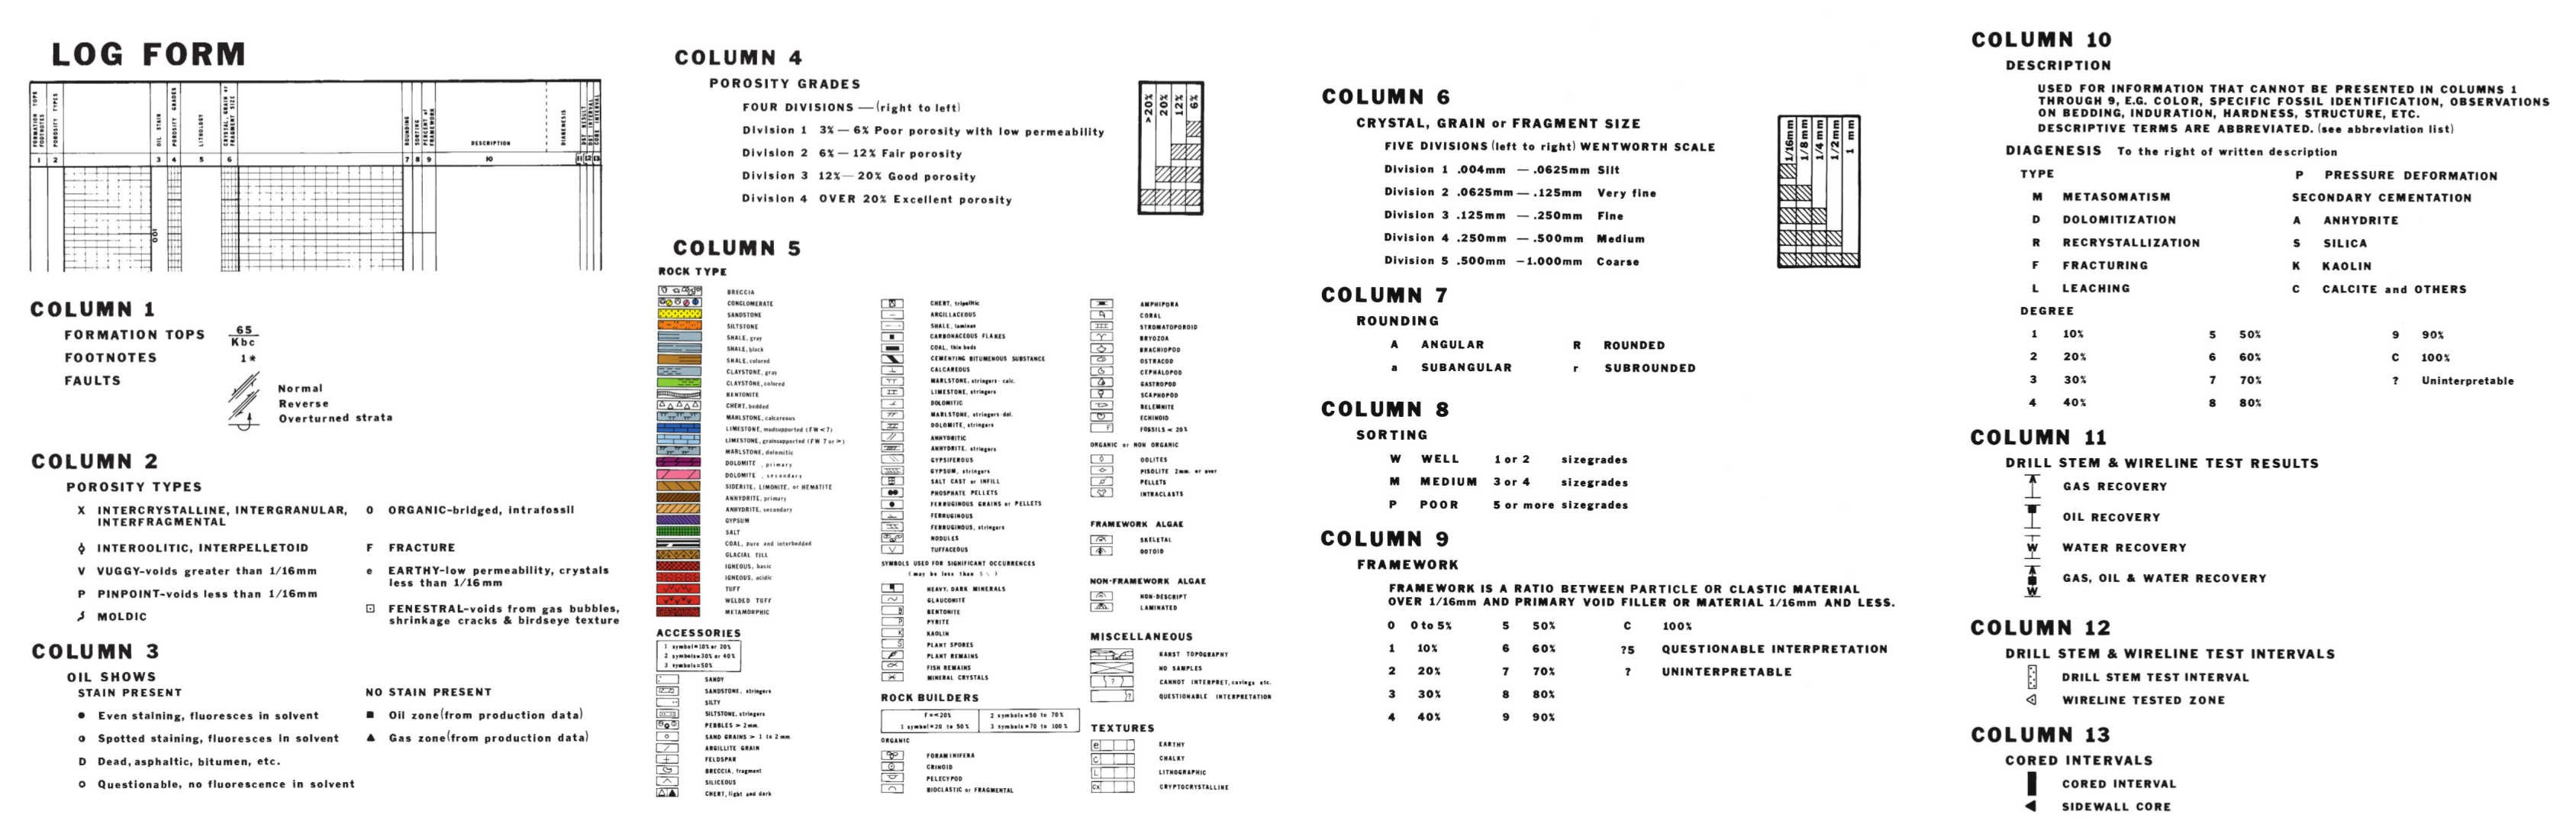 page_2_Canstrat_Symbols_and_Abbrev